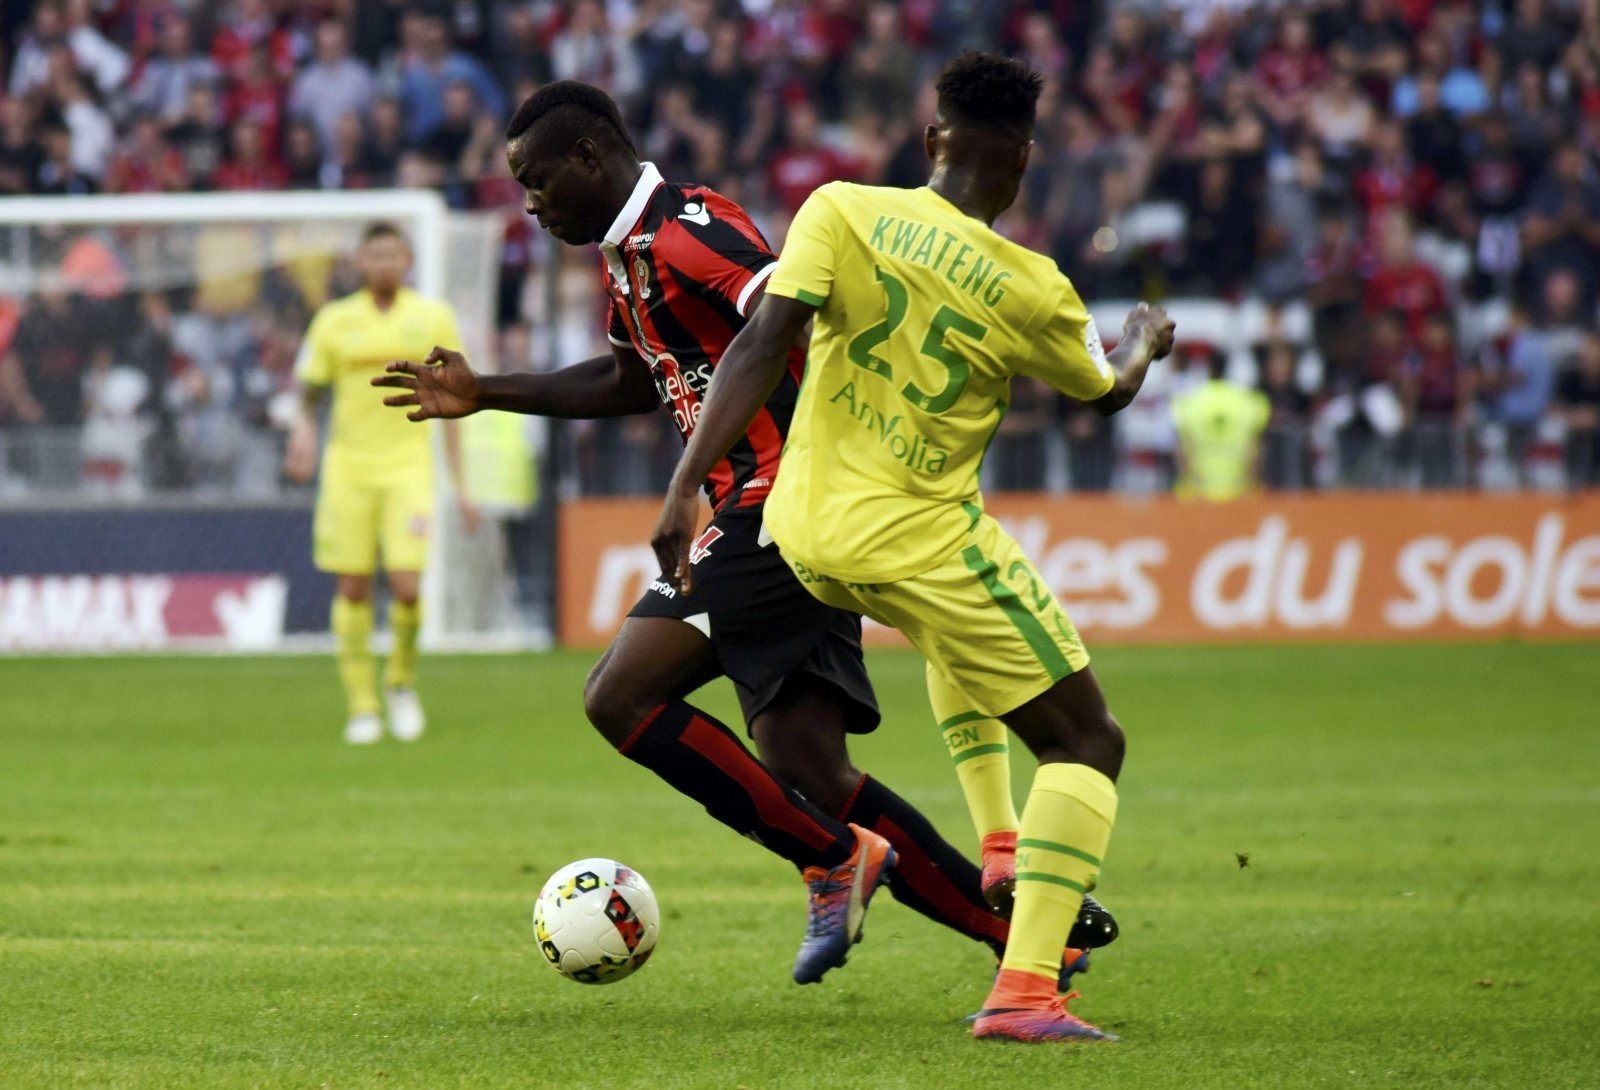 Enock Kwateng would fit nicely into West Brom's promotion plan